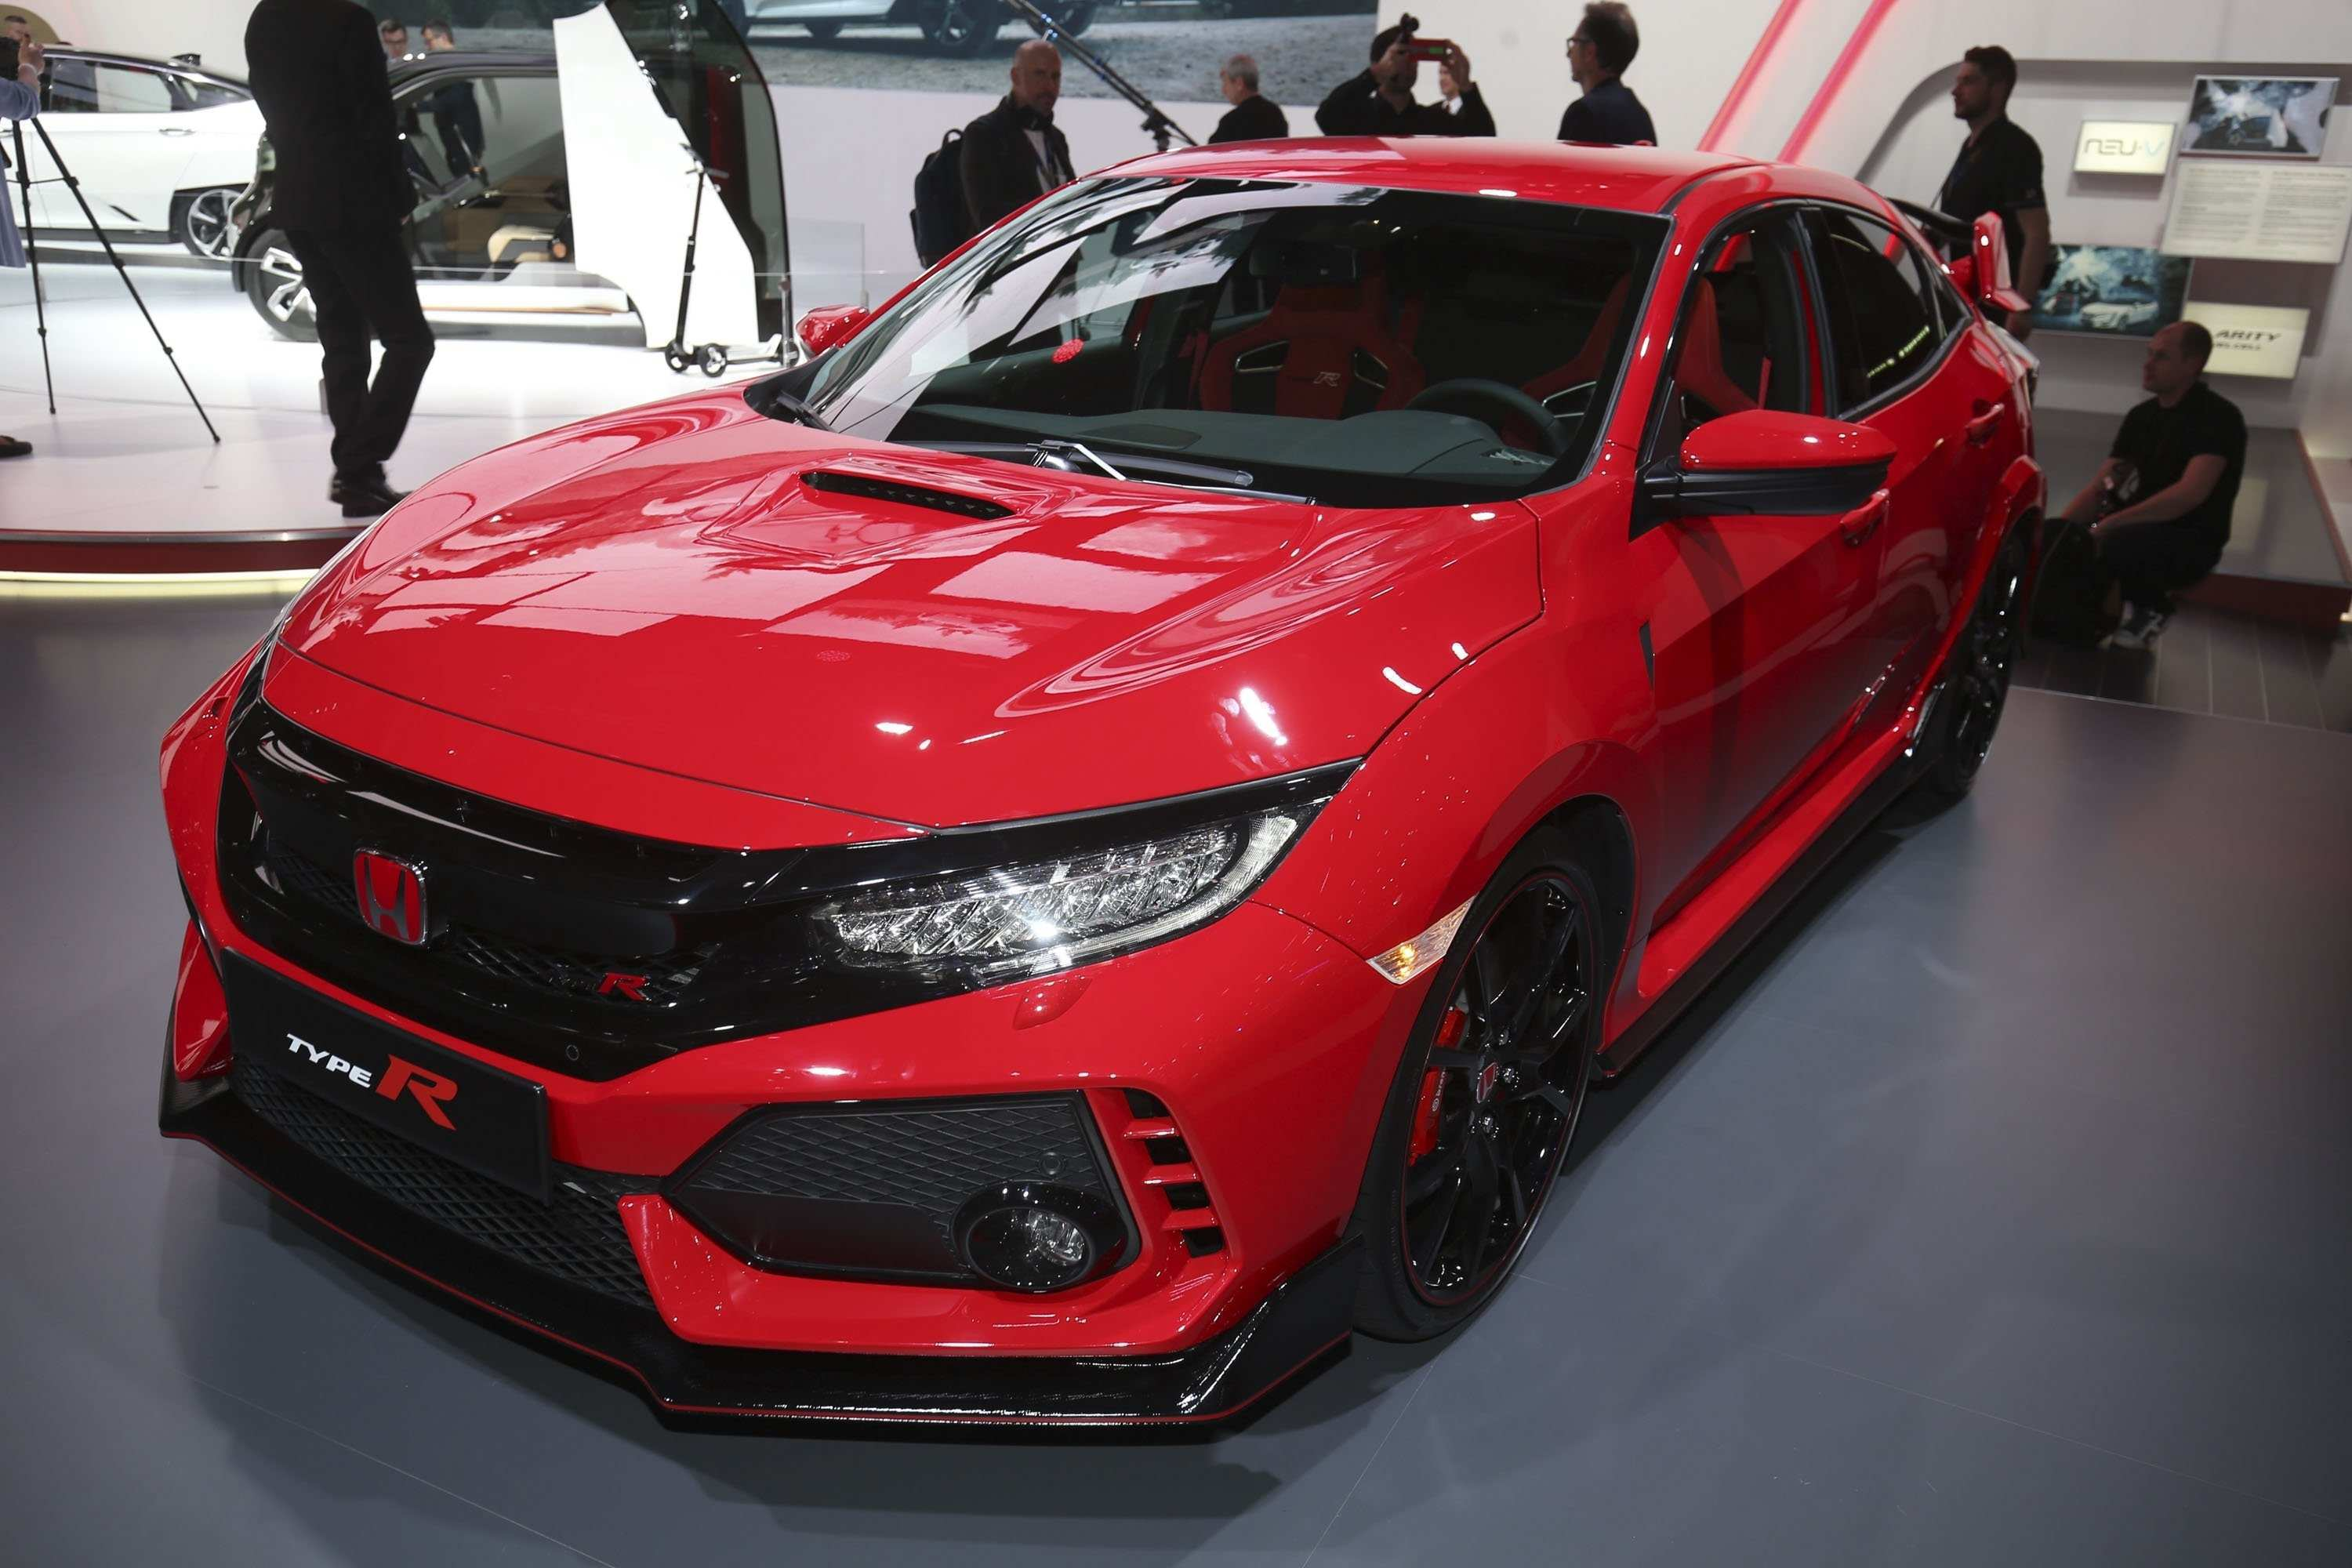 58 New 2019 Honda Accord Type R Exterior And Interior